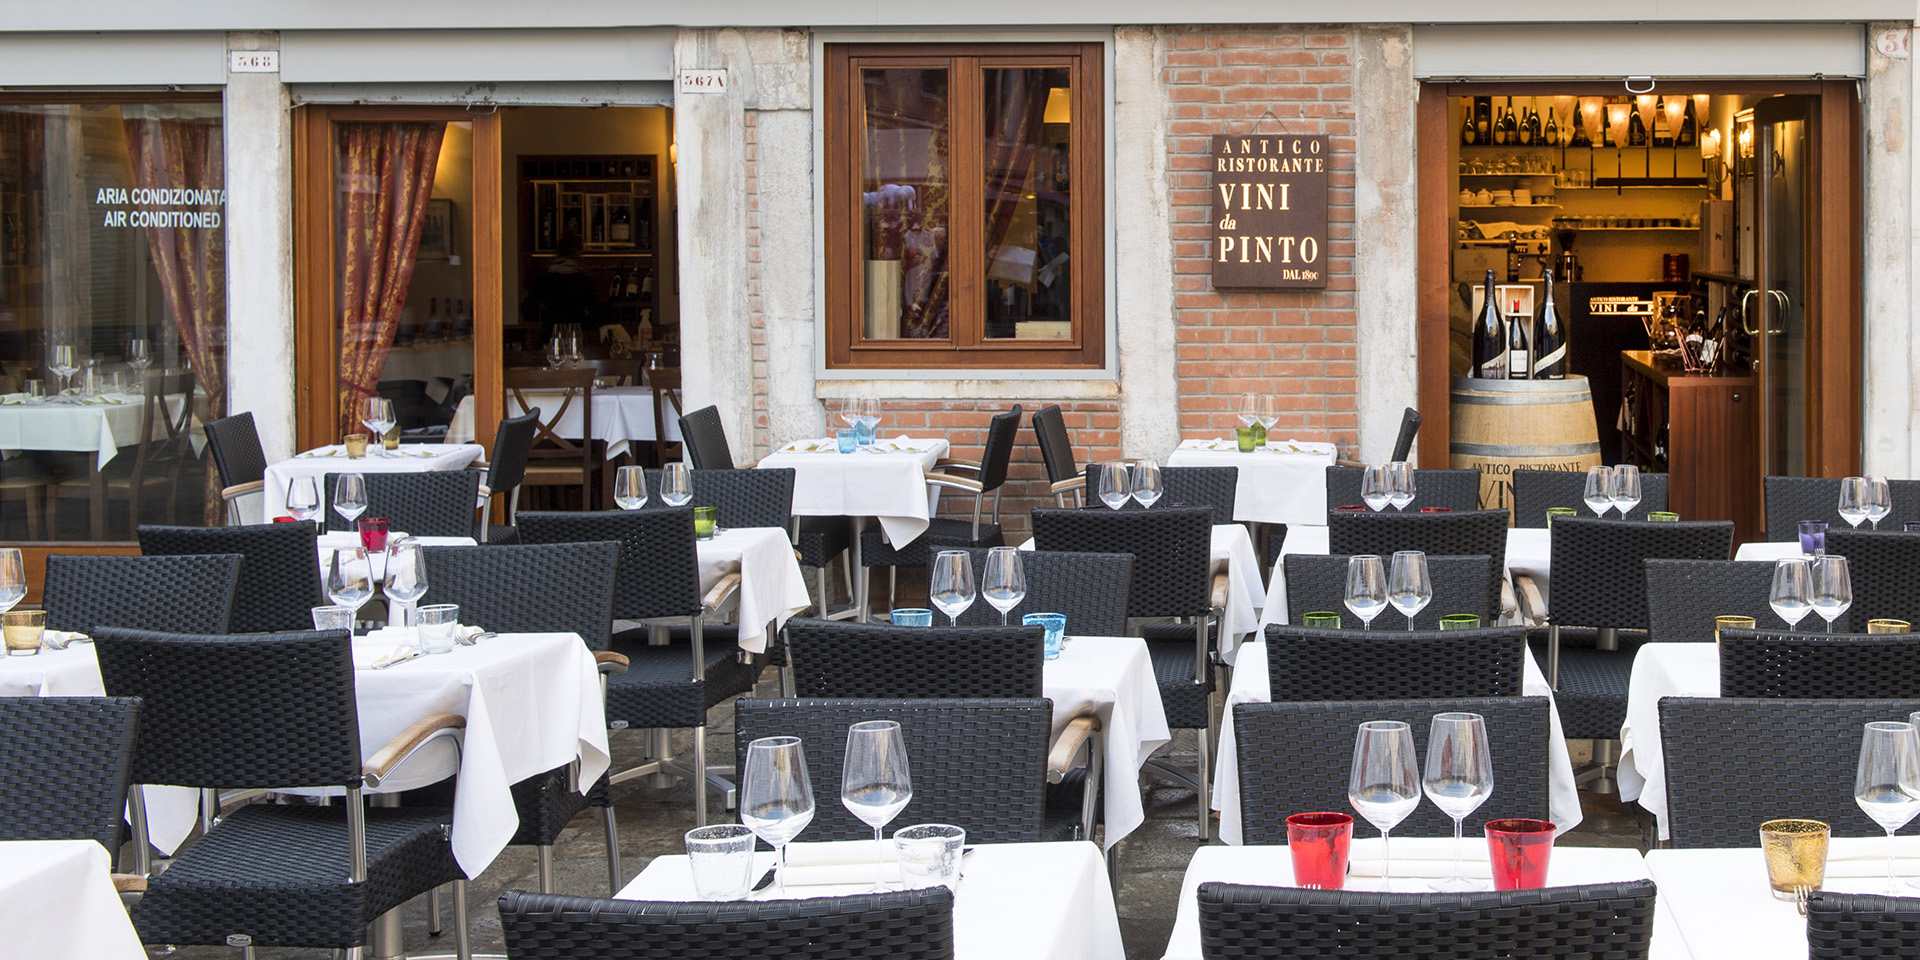 Vini da Pinto - Restaurant at the Rialto - Outside seating neat the Rialto Market